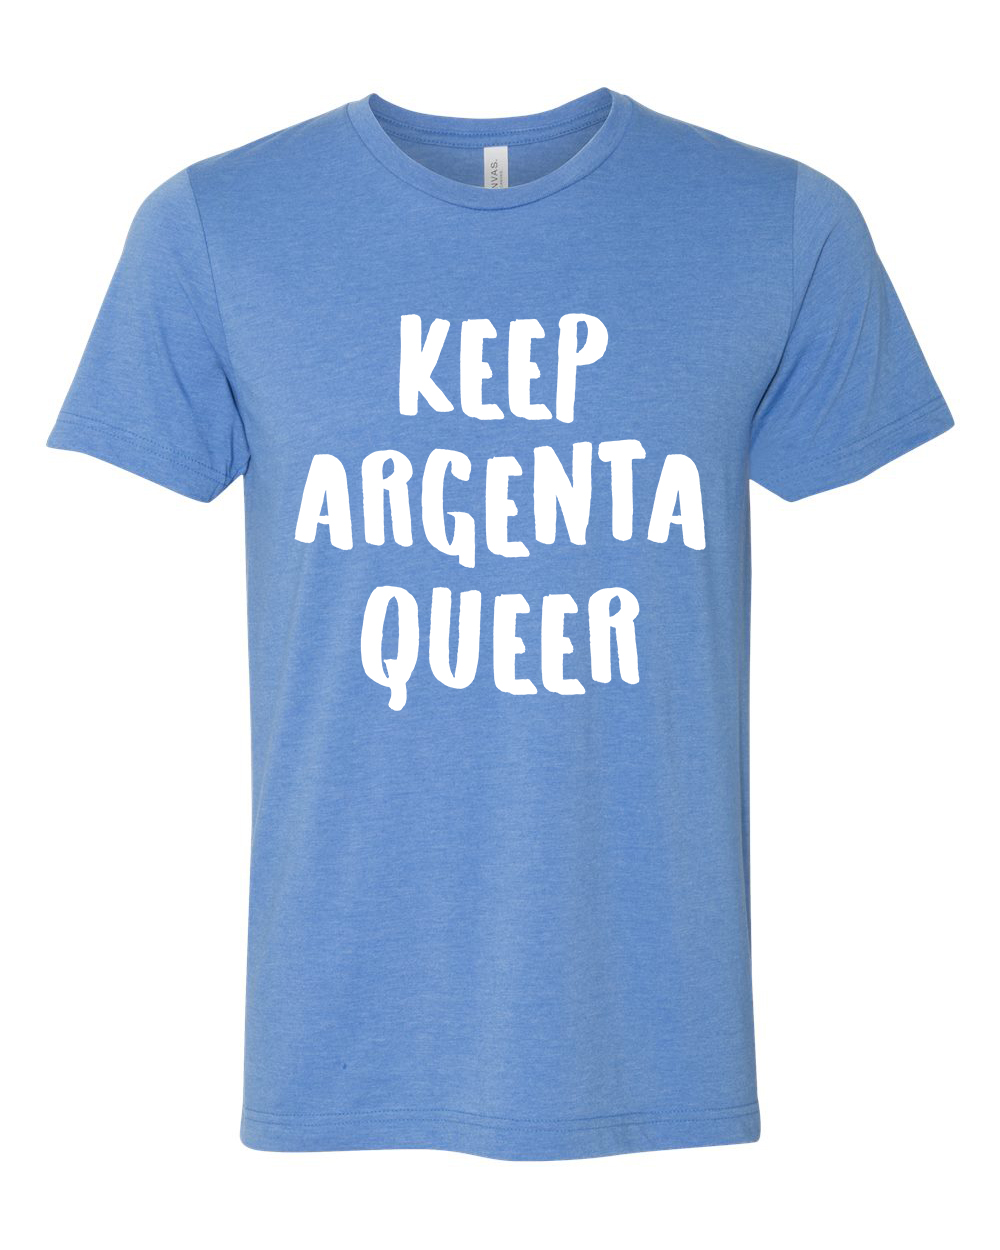 Keep Argenta Queer (Heather Columbia Blue)